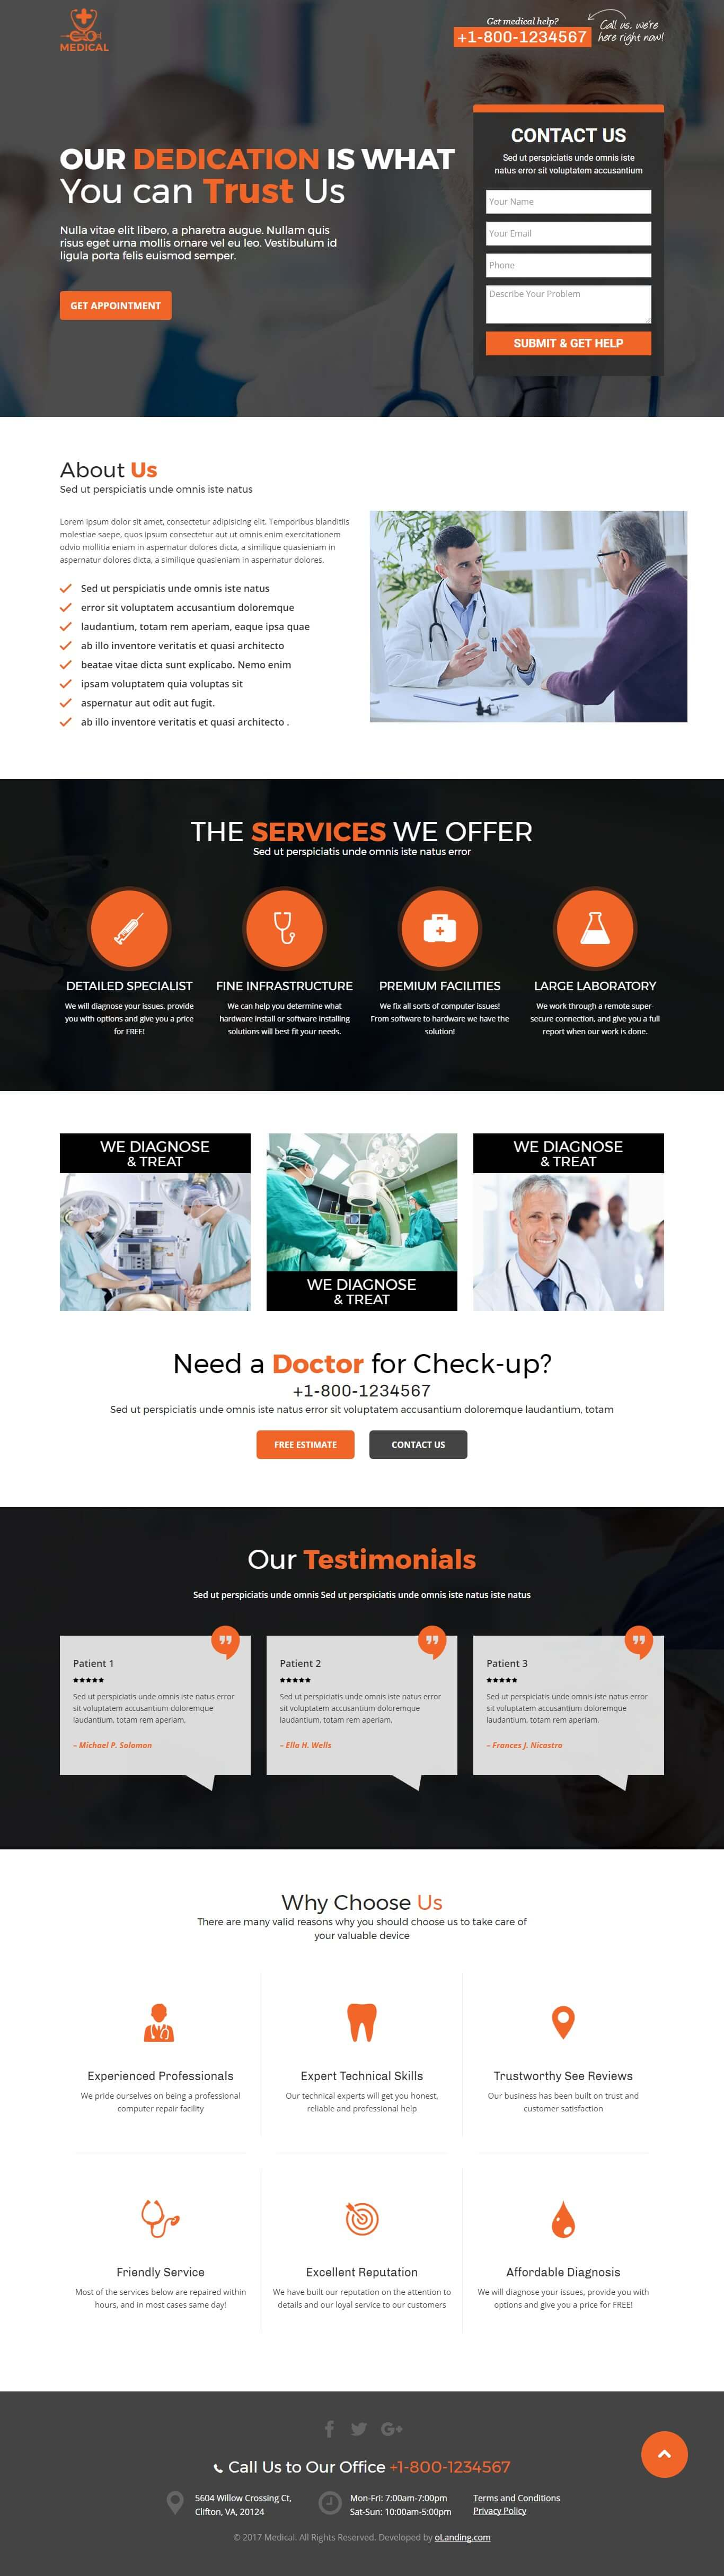 SEO Friendly Responsive Medical Landing Page Template - oLanding